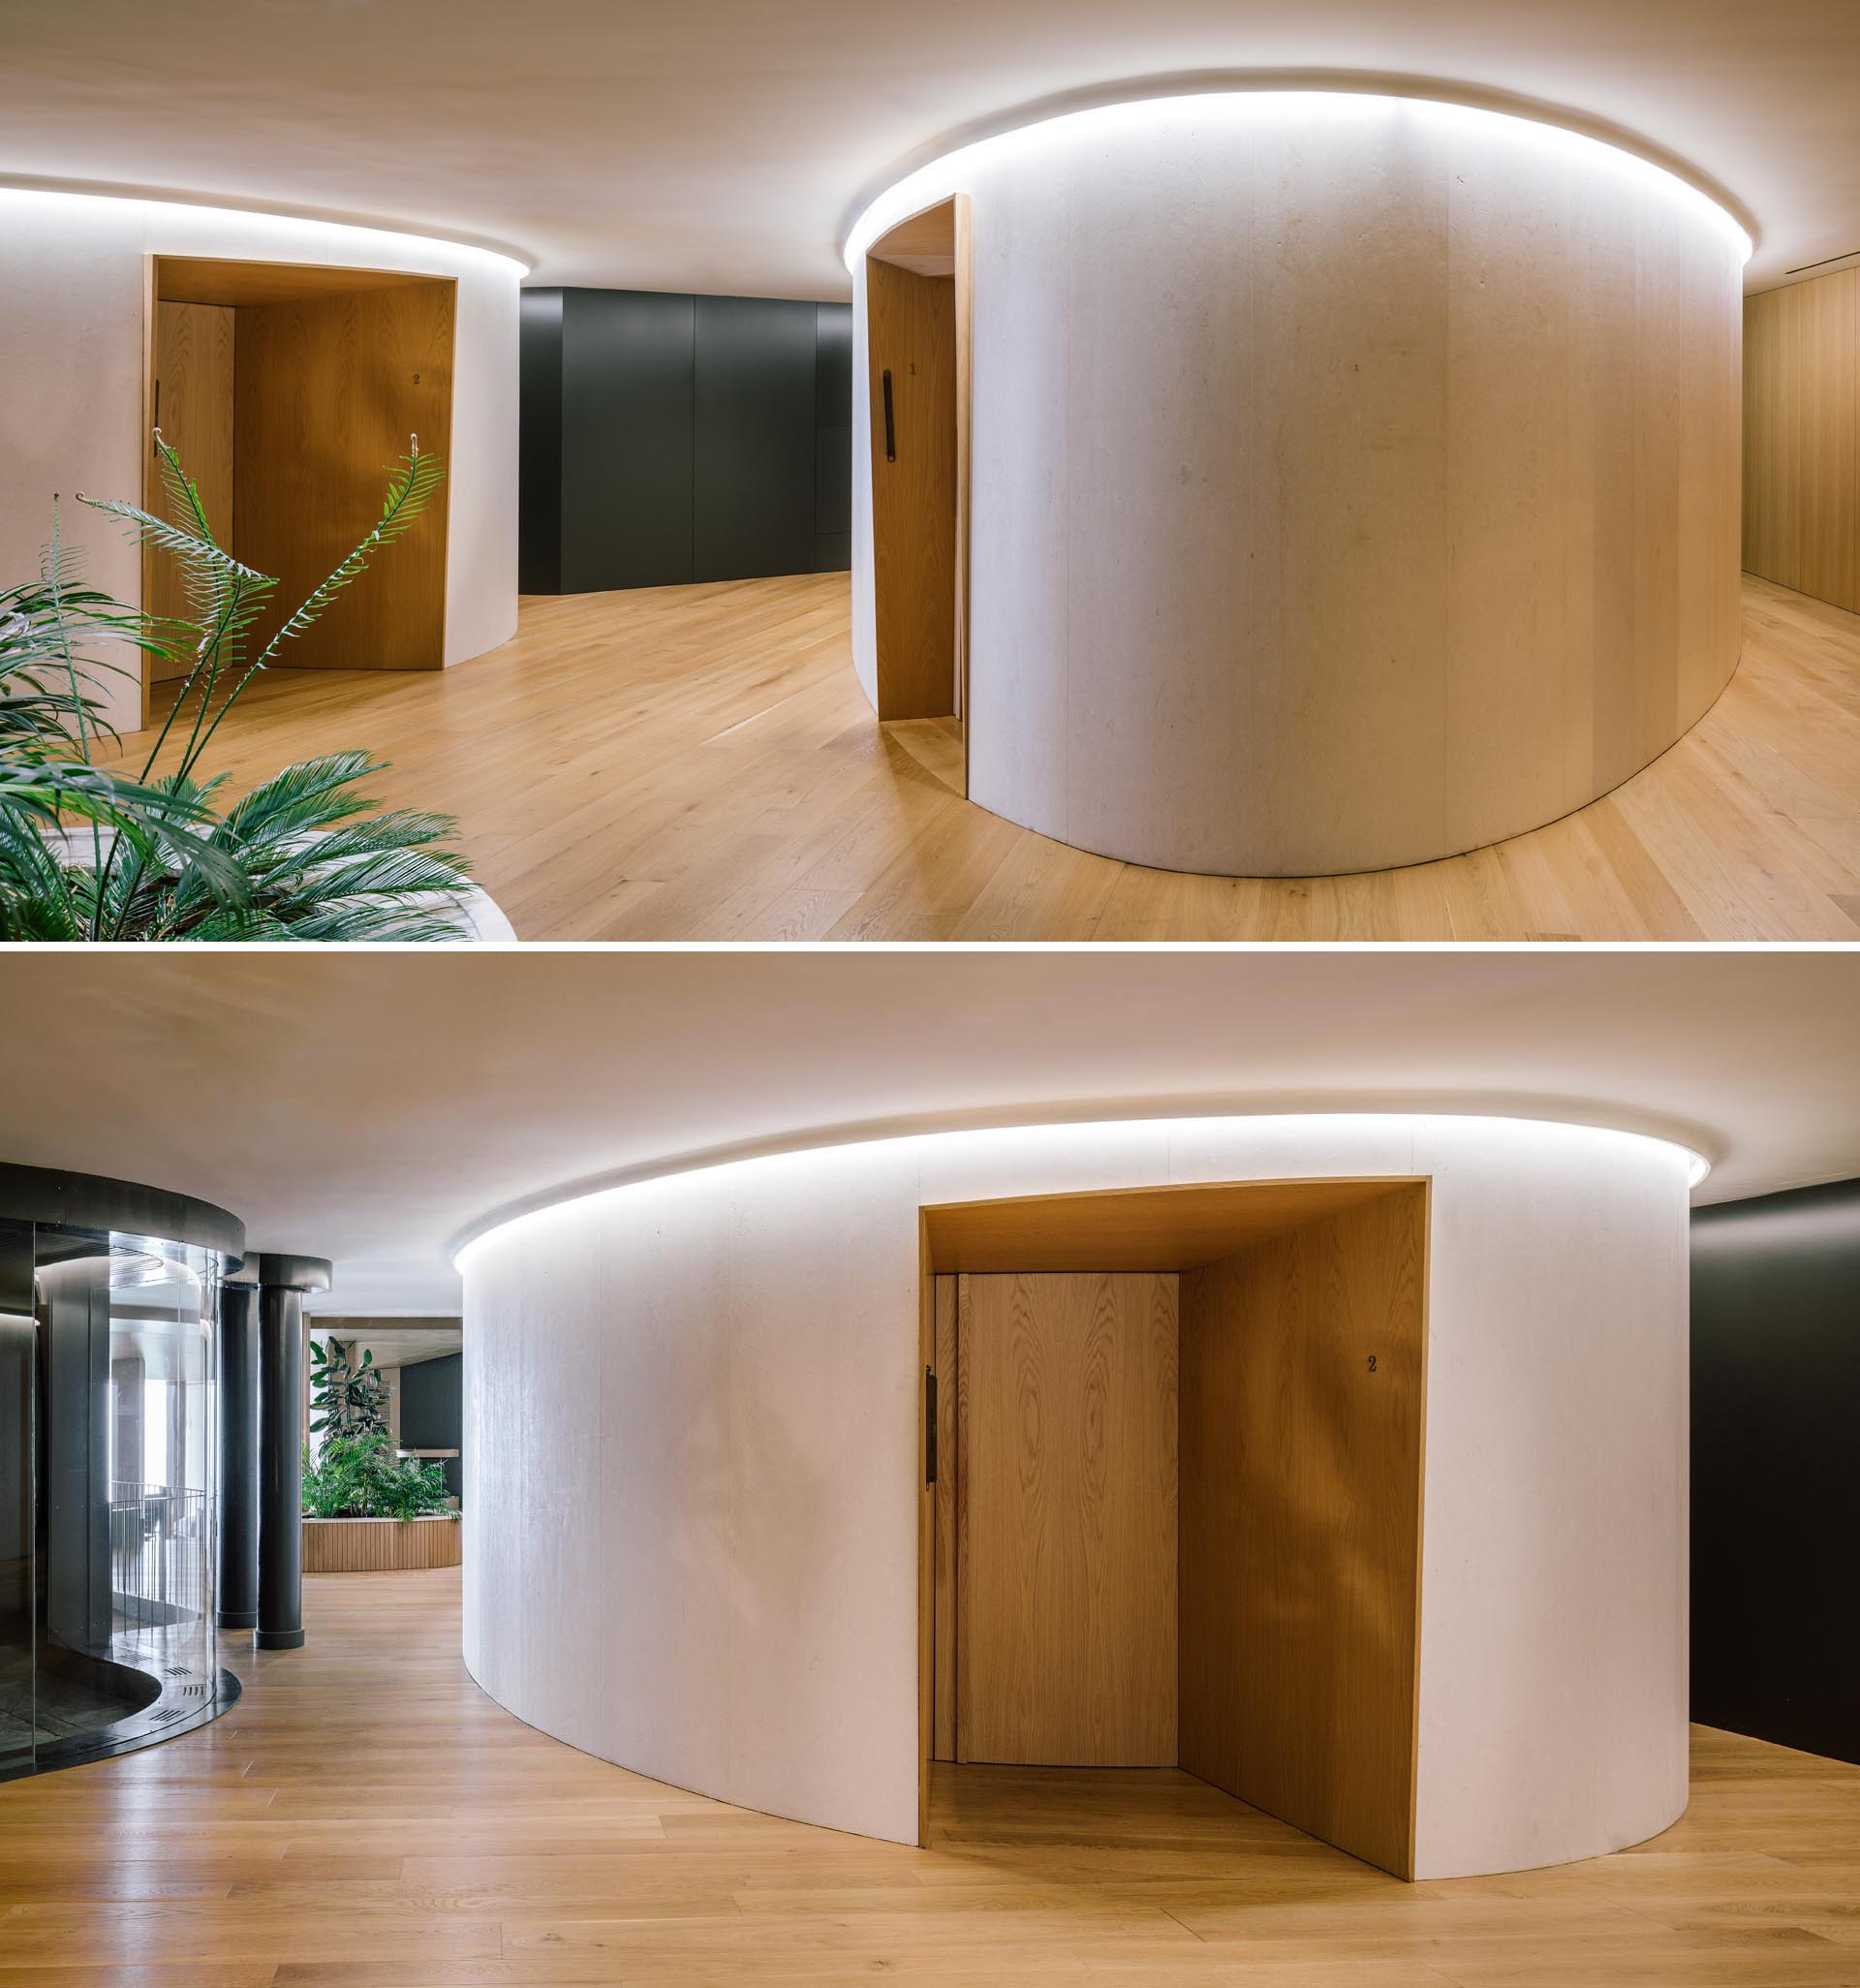 Inside a modern hotel spa, light wood walls are accented by recessed doors, while hidden lighting creates a glow that highlights the curved walls.